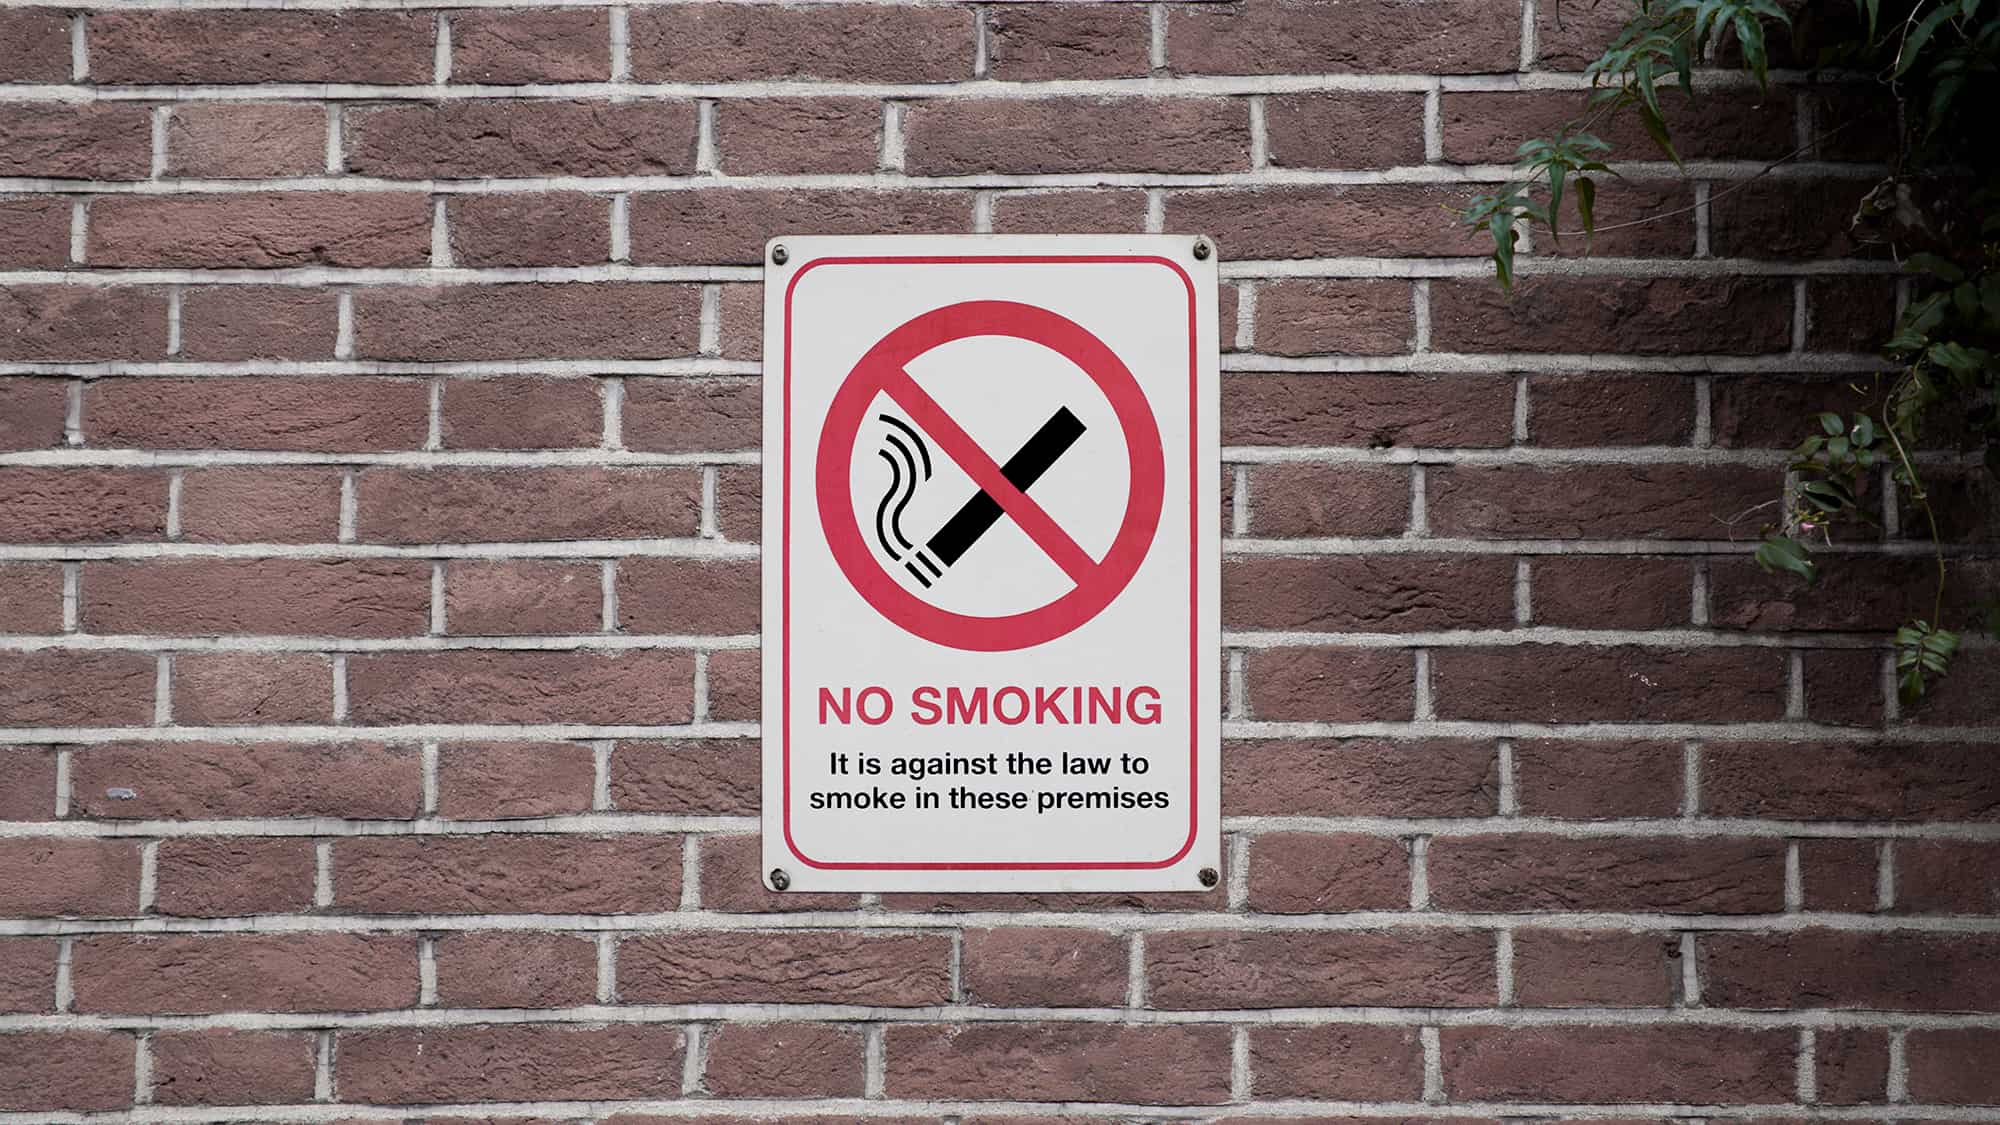 No smoking sign on a wall